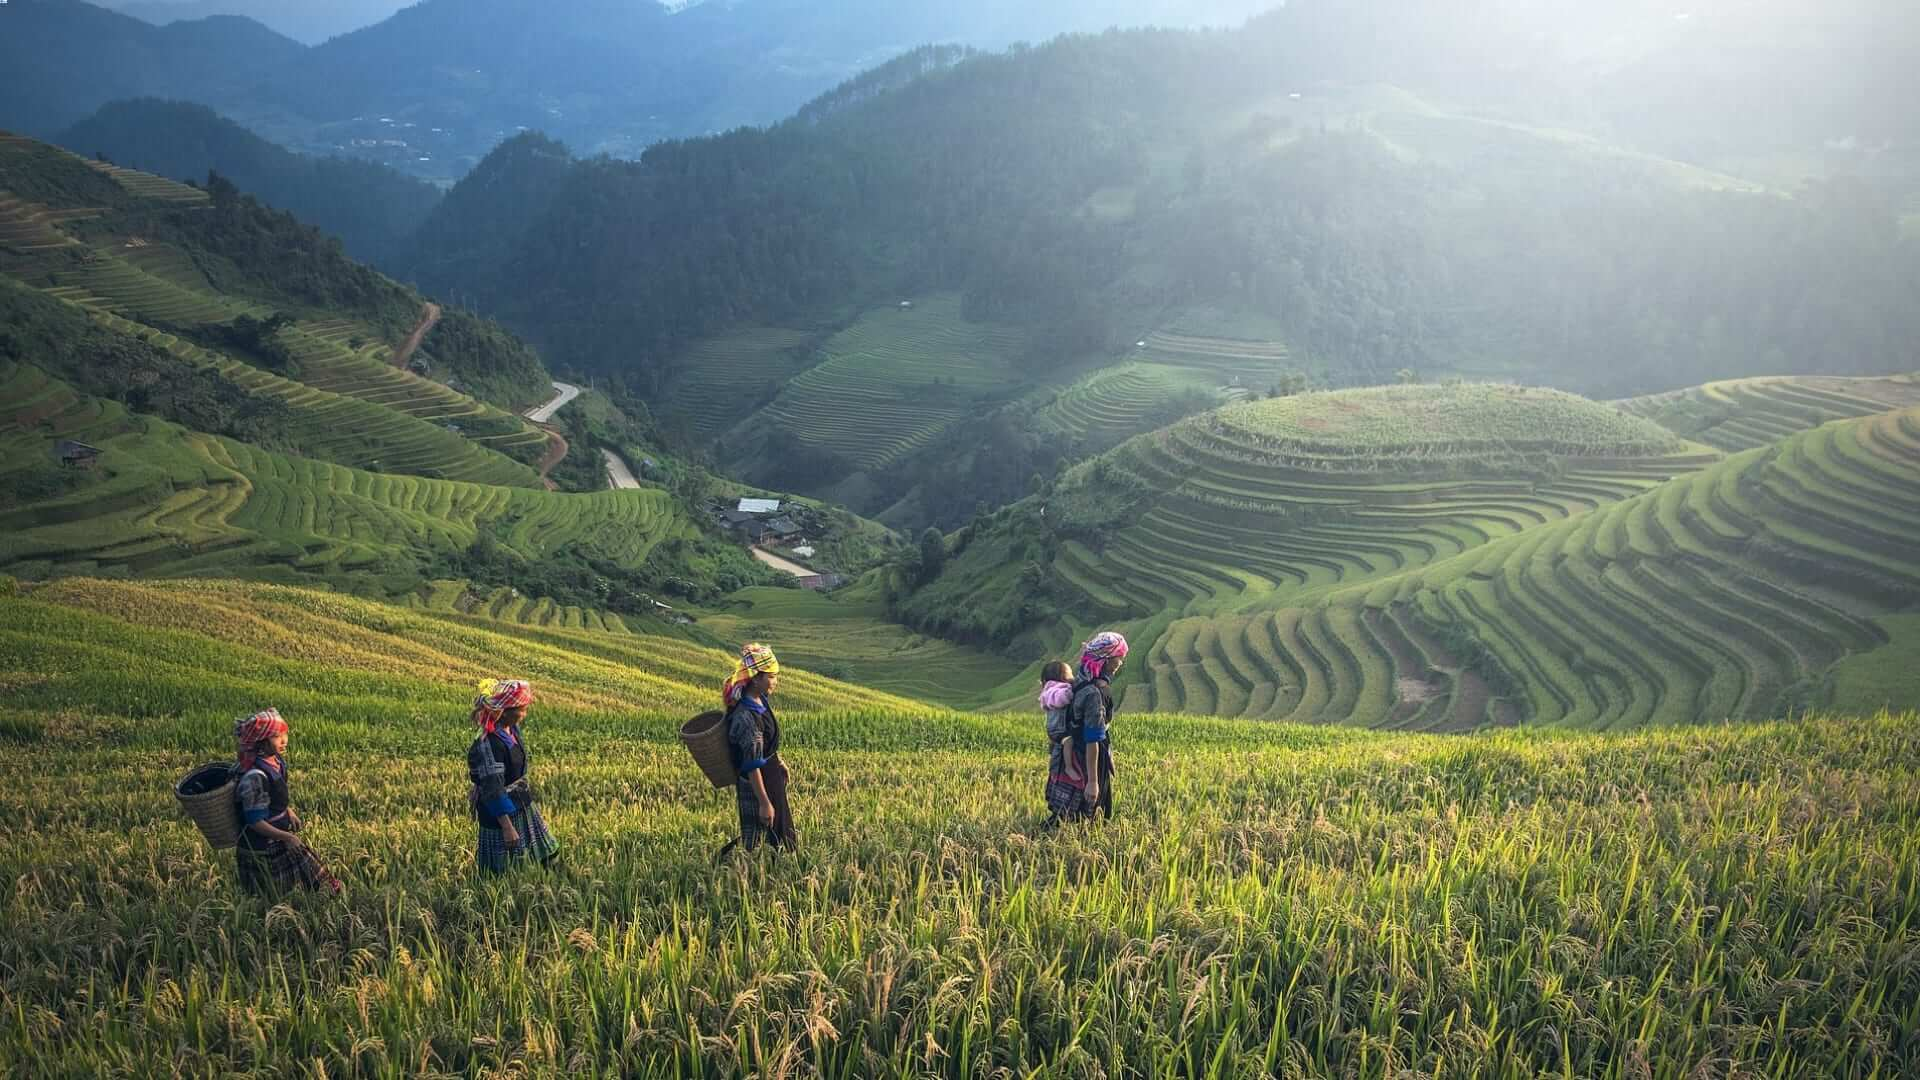 Four Indonesian woman are walking and working on a ricefield in Indonesia.